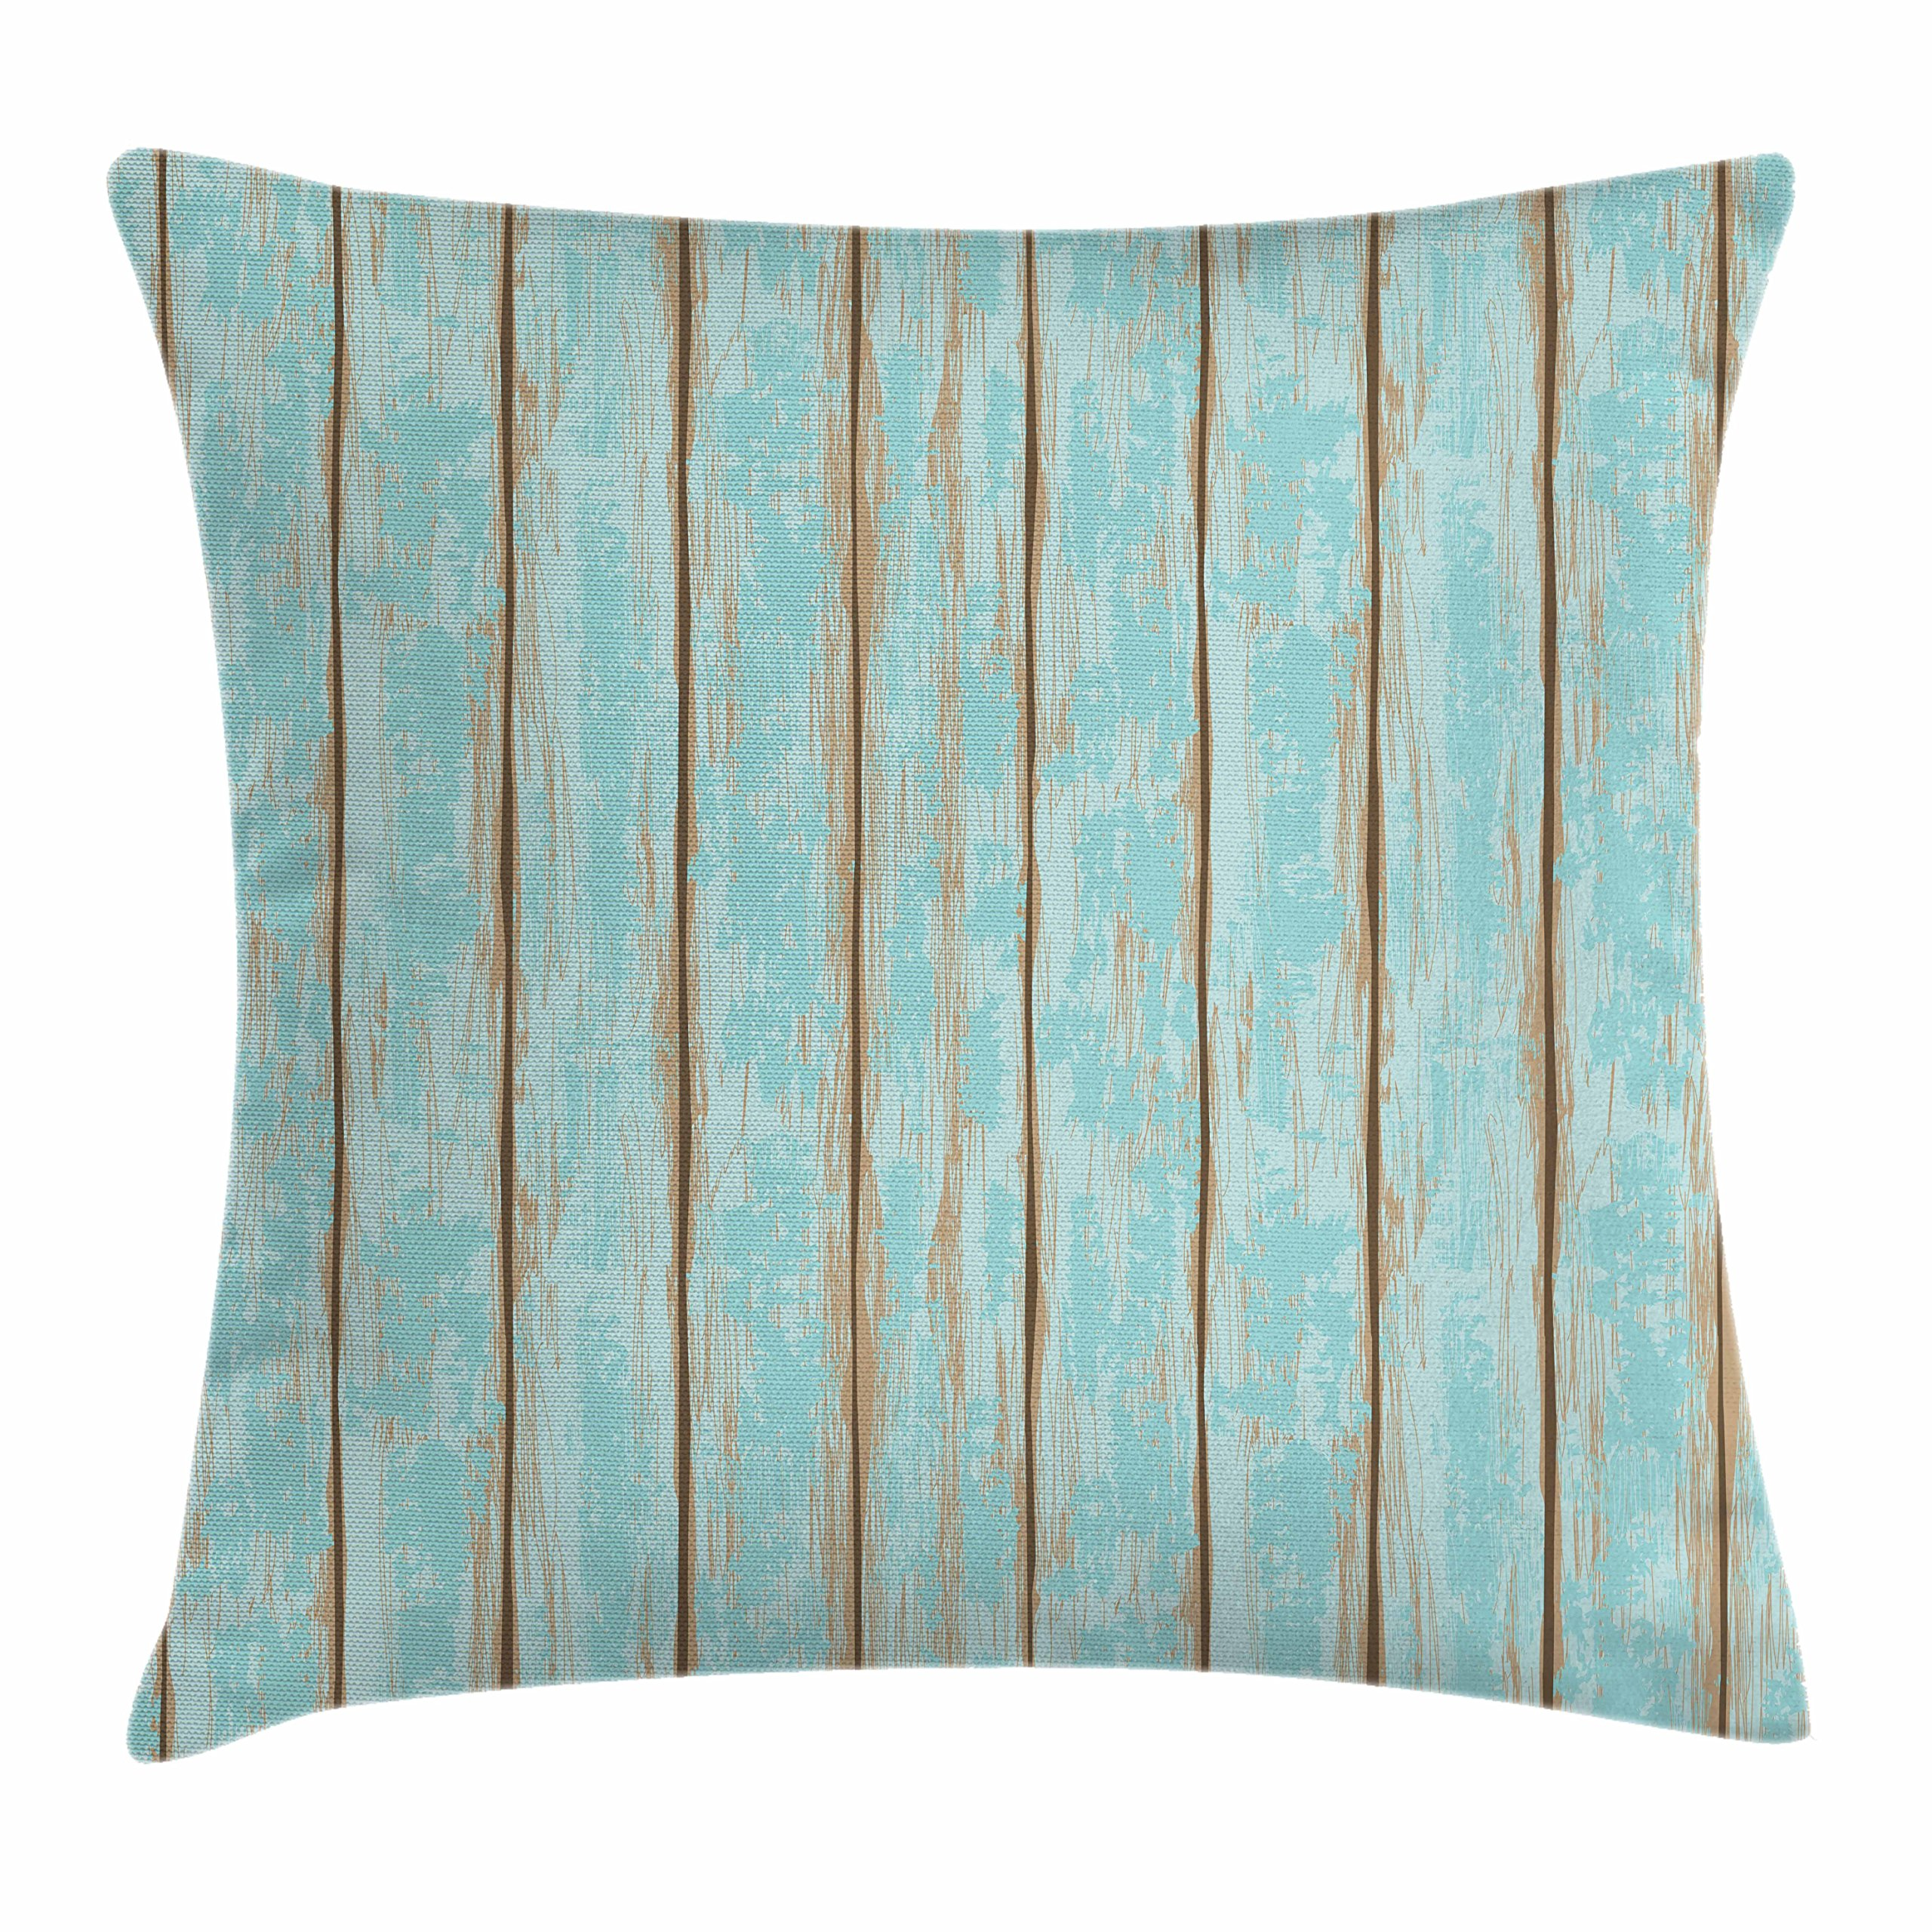 Lunarable Wood Print Throw Pillow Cushion Cover, Old Fashioned Weathered Rustic Planks Summer Cottage Beach Coastal Theme, Decorative Square Accent Pillow Case, 16 X 16 Inches, Pale Blue Tan